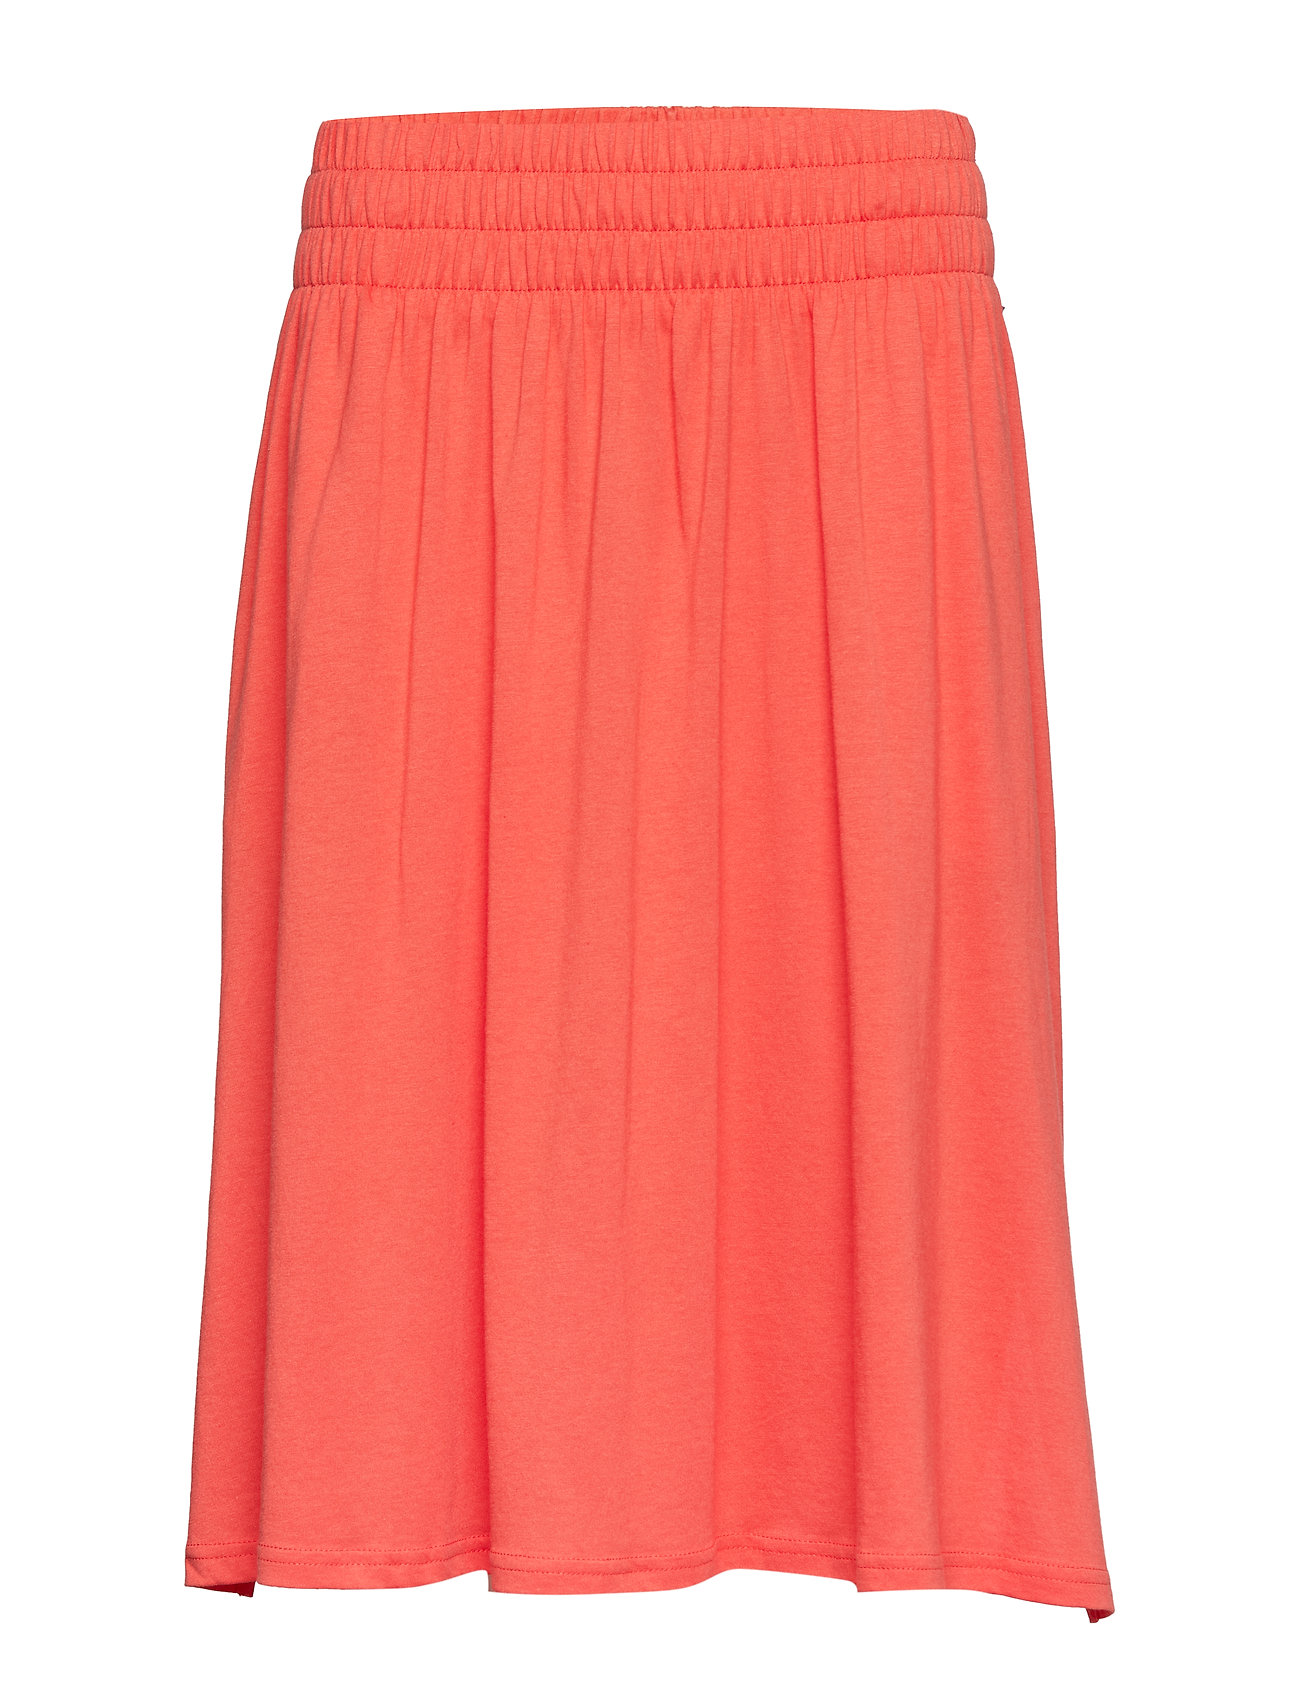 Lexington Clothing Jenni Jersey Skirt - PAPRIKA RED